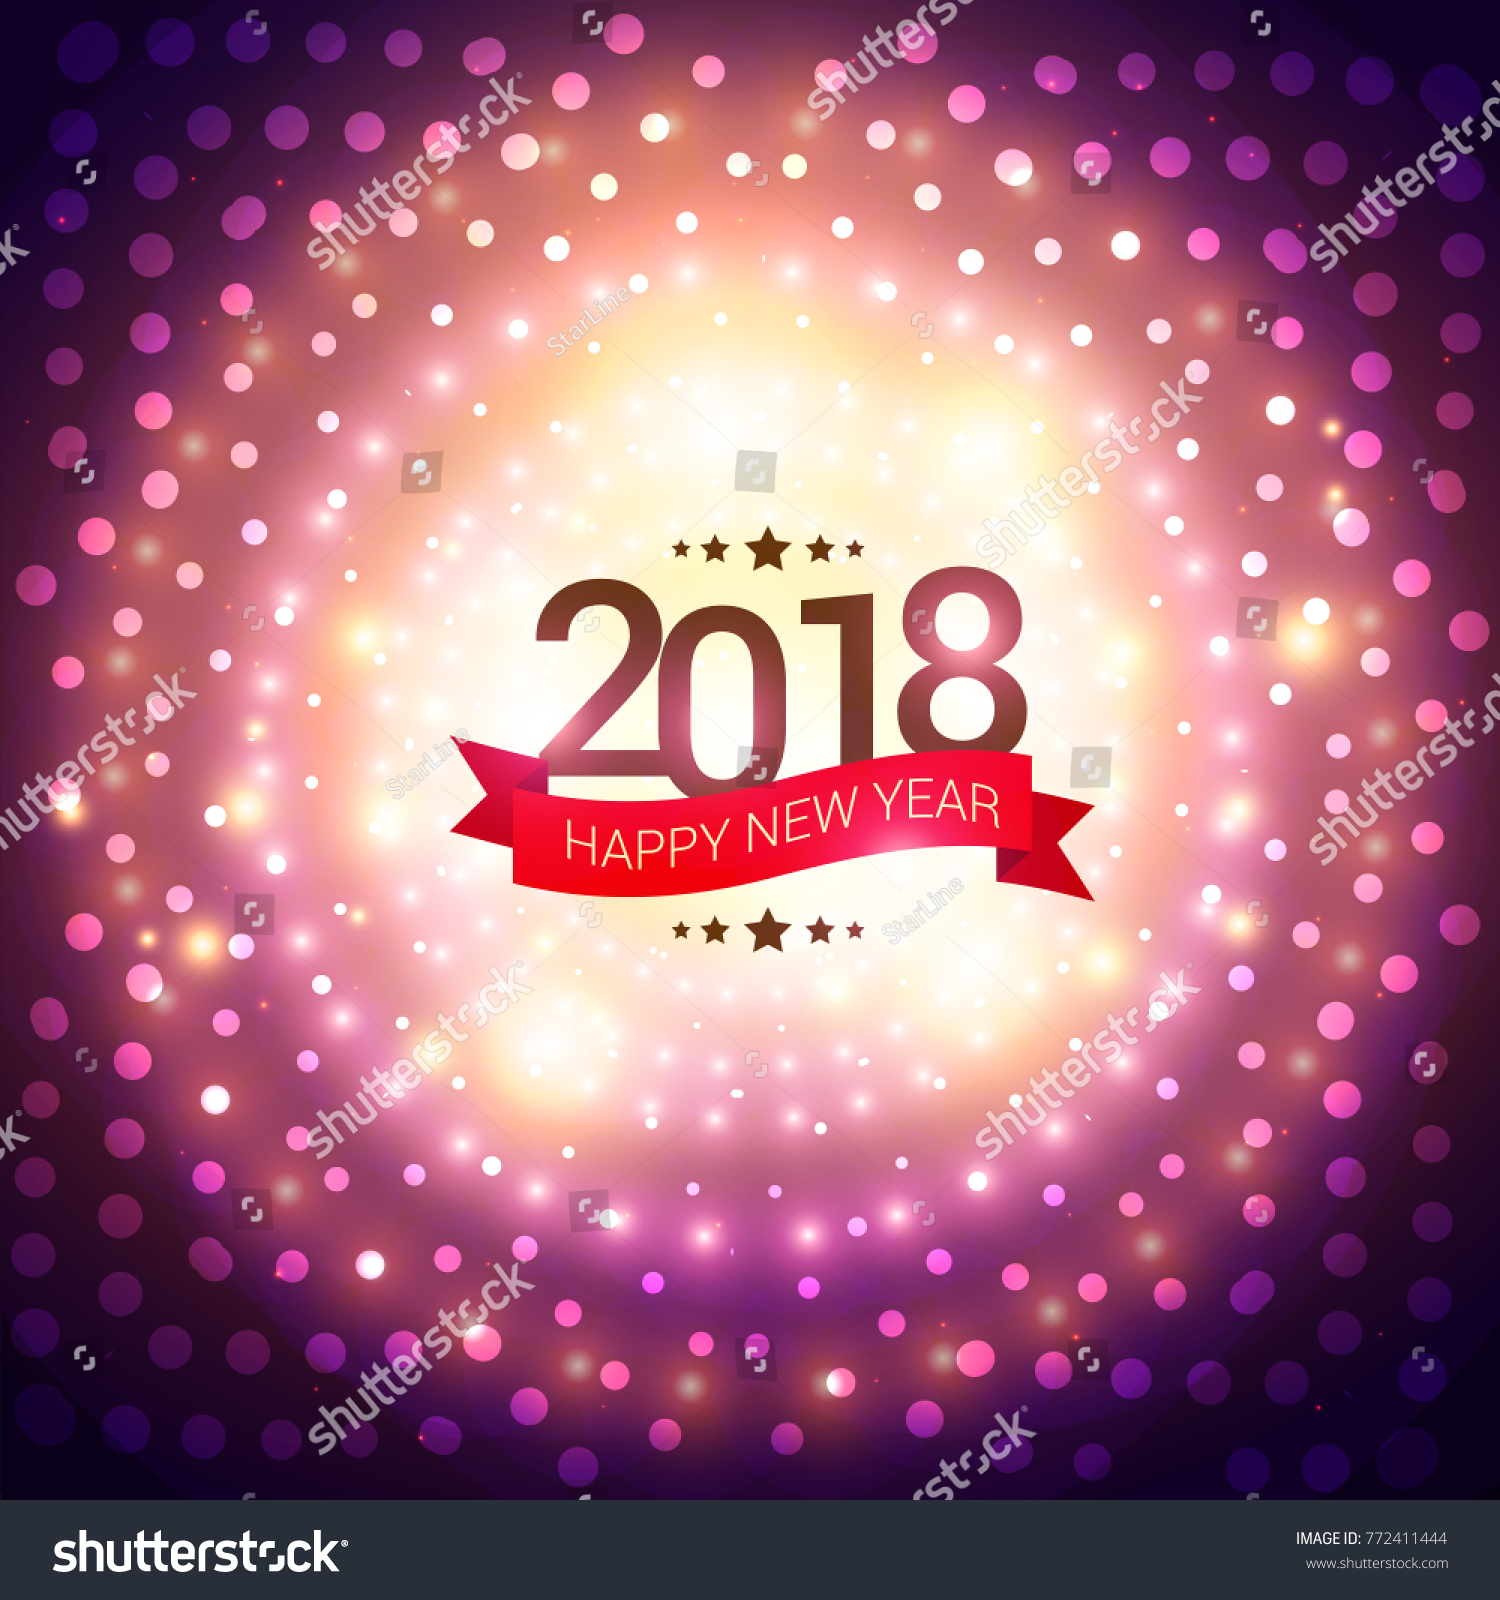 happy new year 2018 party invitation background